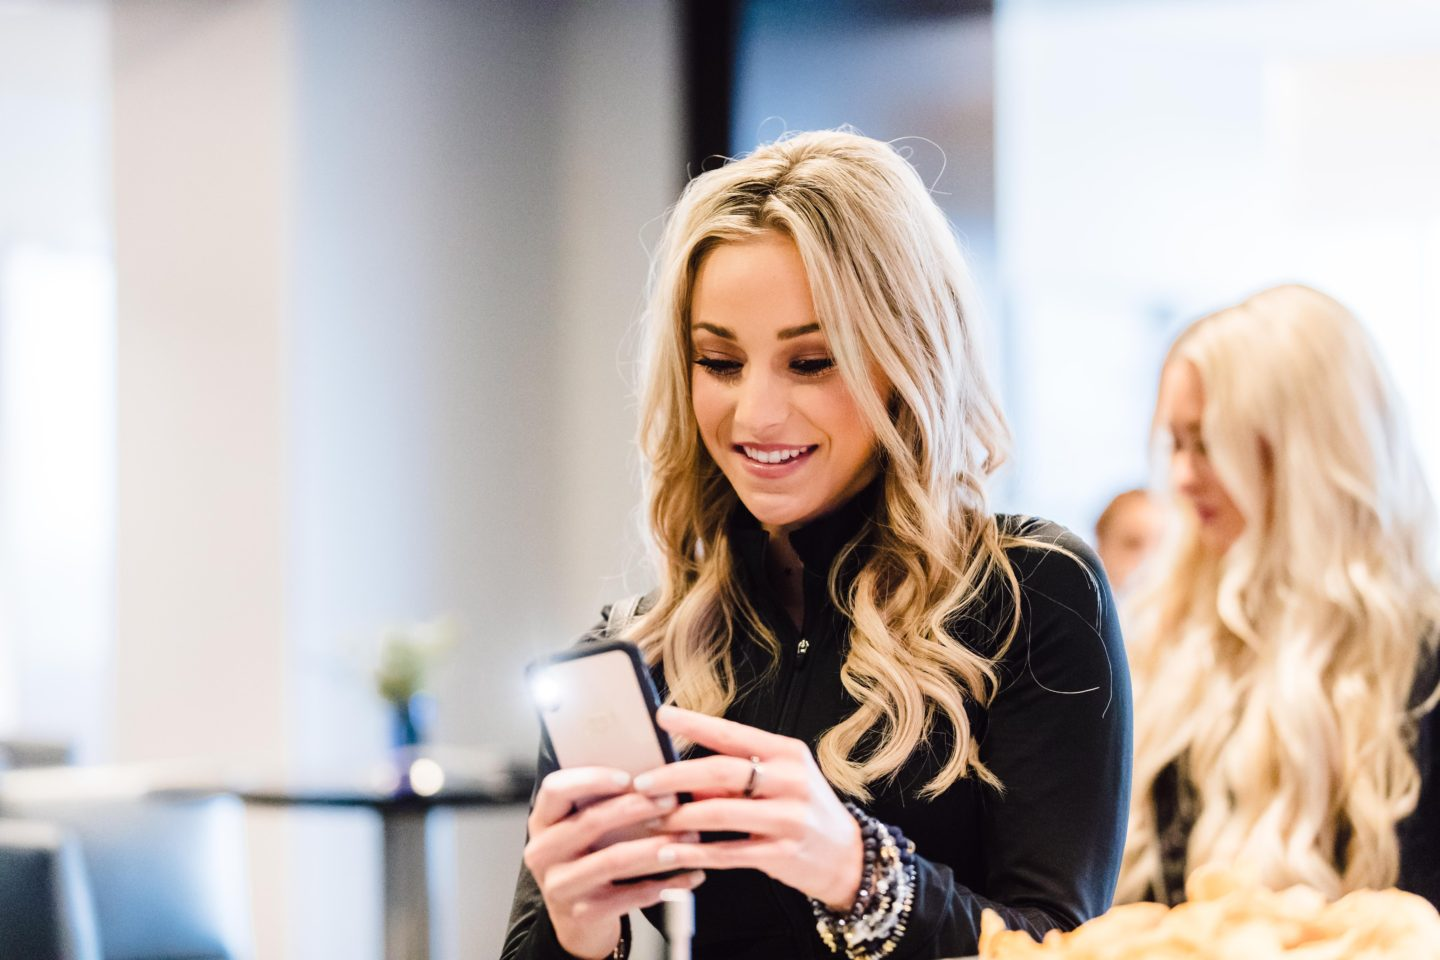 Dallas Fashion Model, Fashion & Lifestyle Blogger - Peyton Mabry